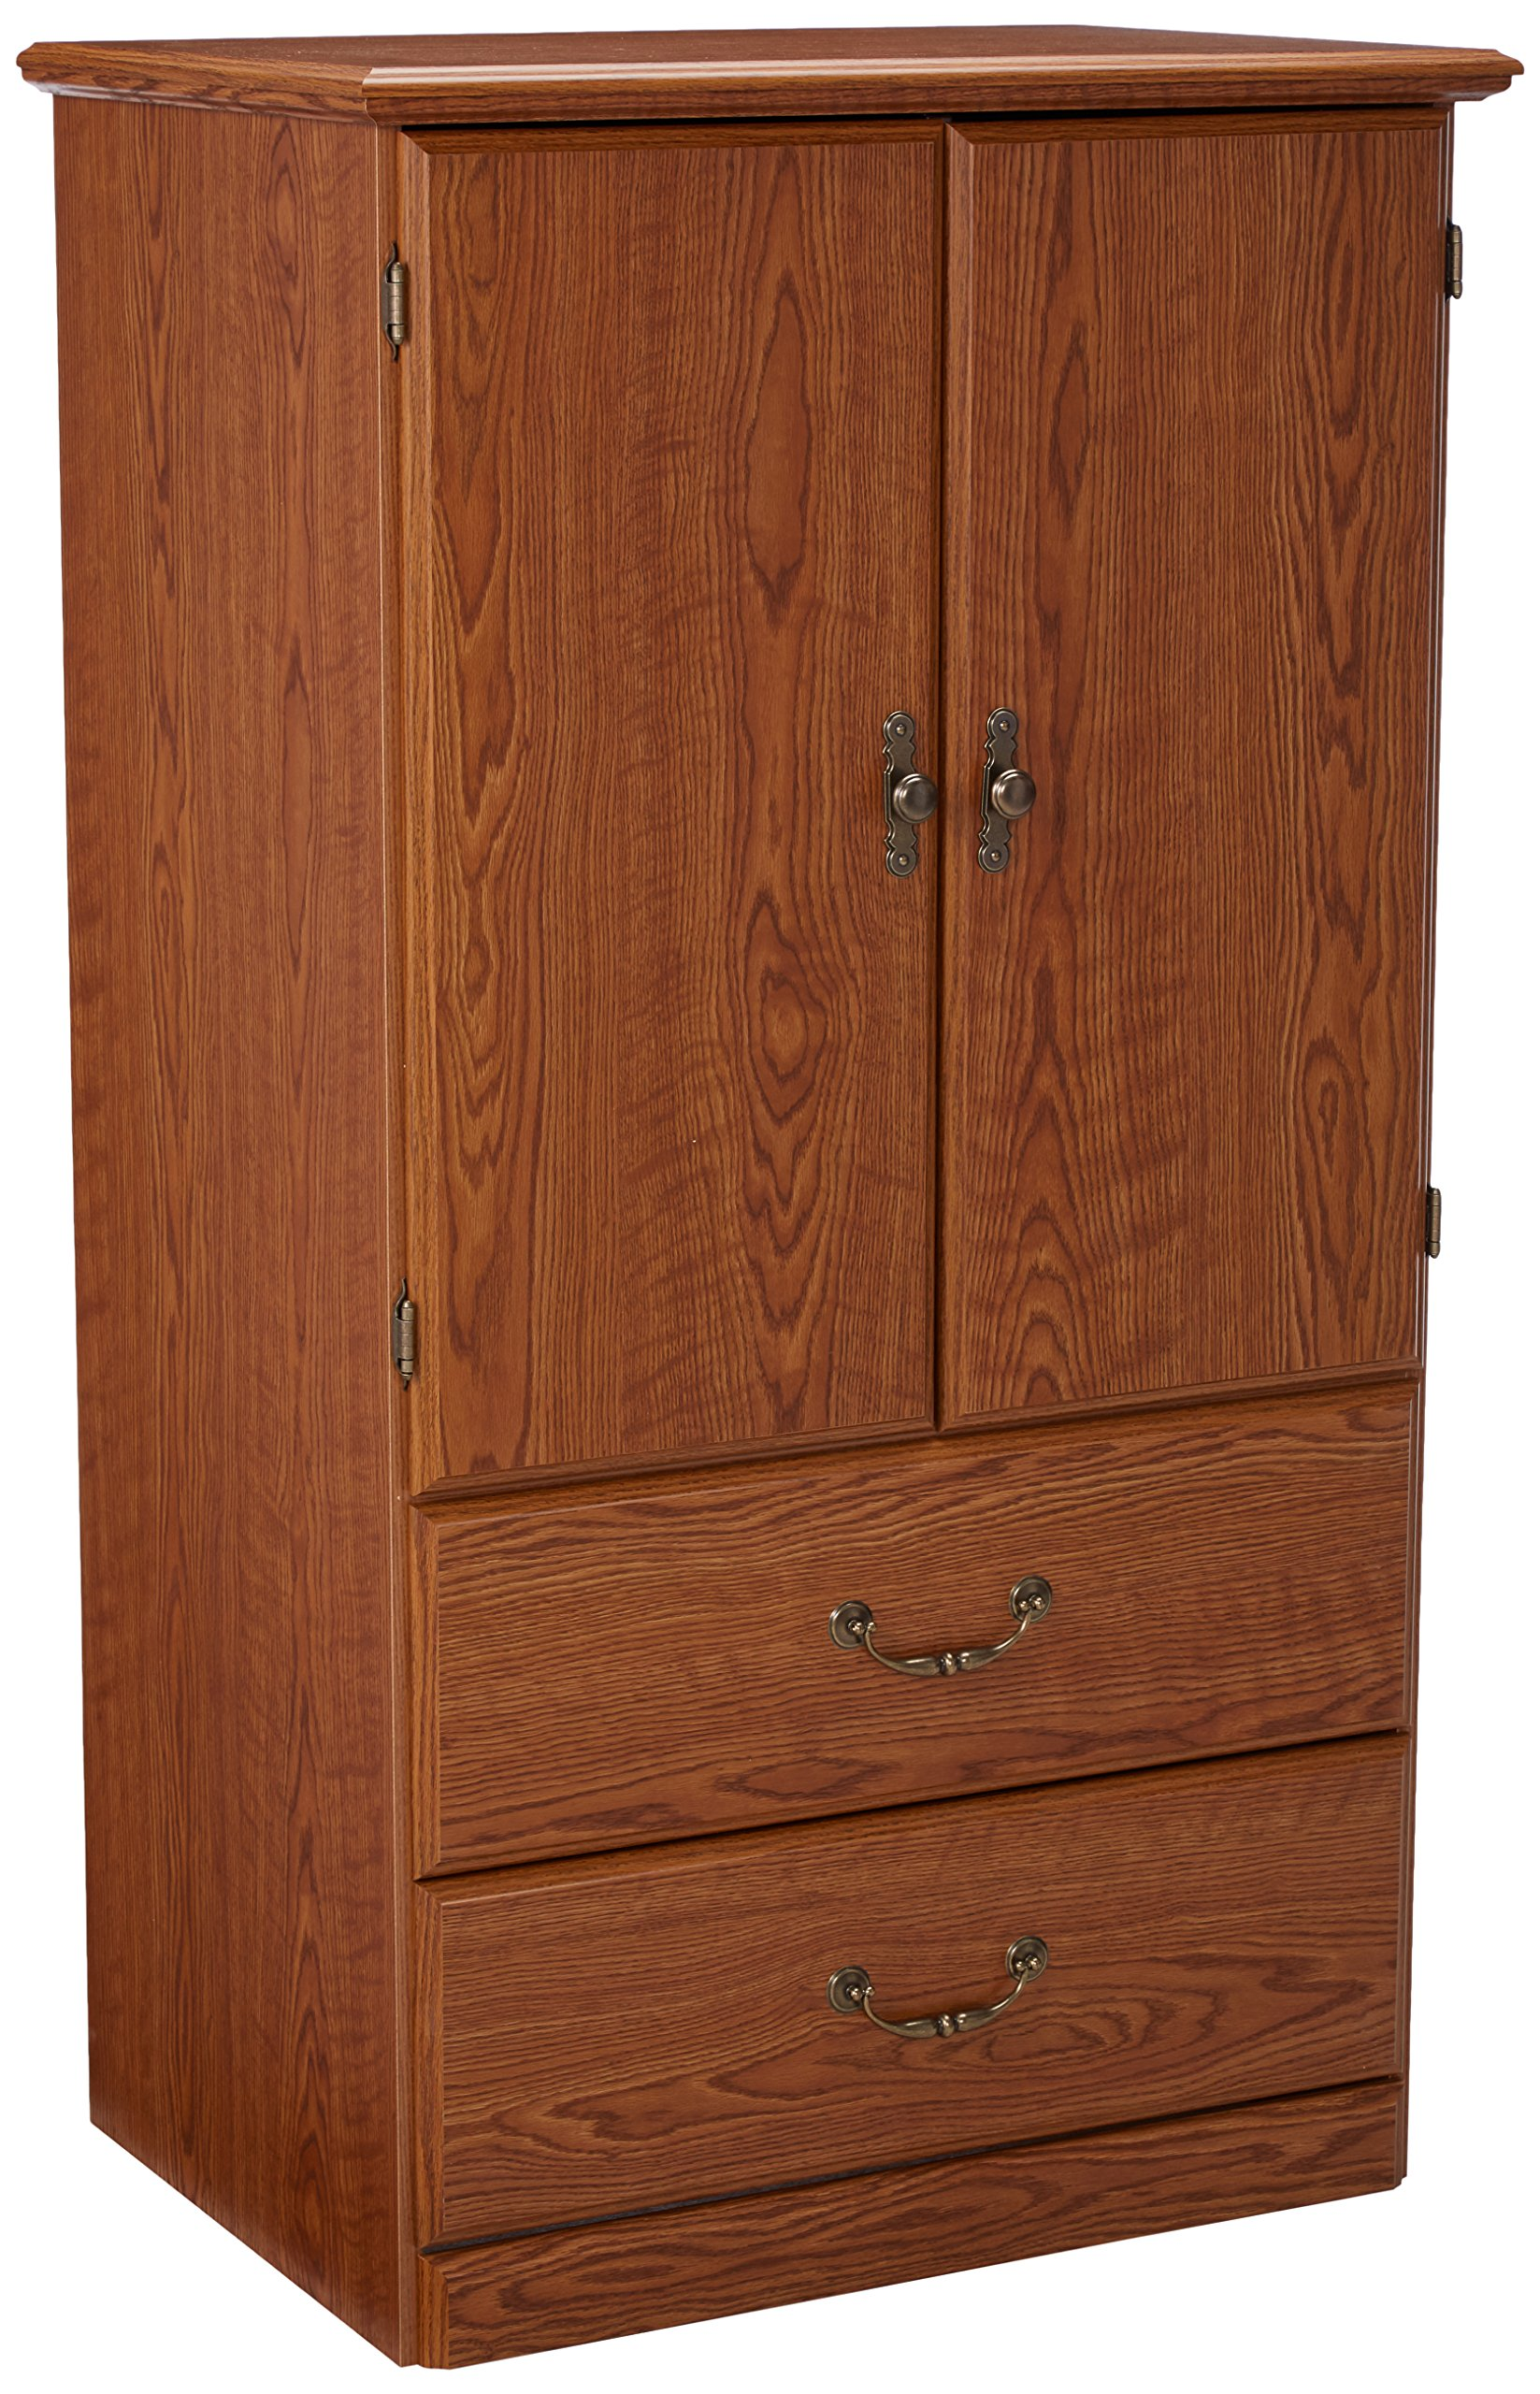 Sauder 401292 Orchard Hills Armoire, L: 30.95'' x W: 20.83'' x H: 54.65'', Carolina Oak finish